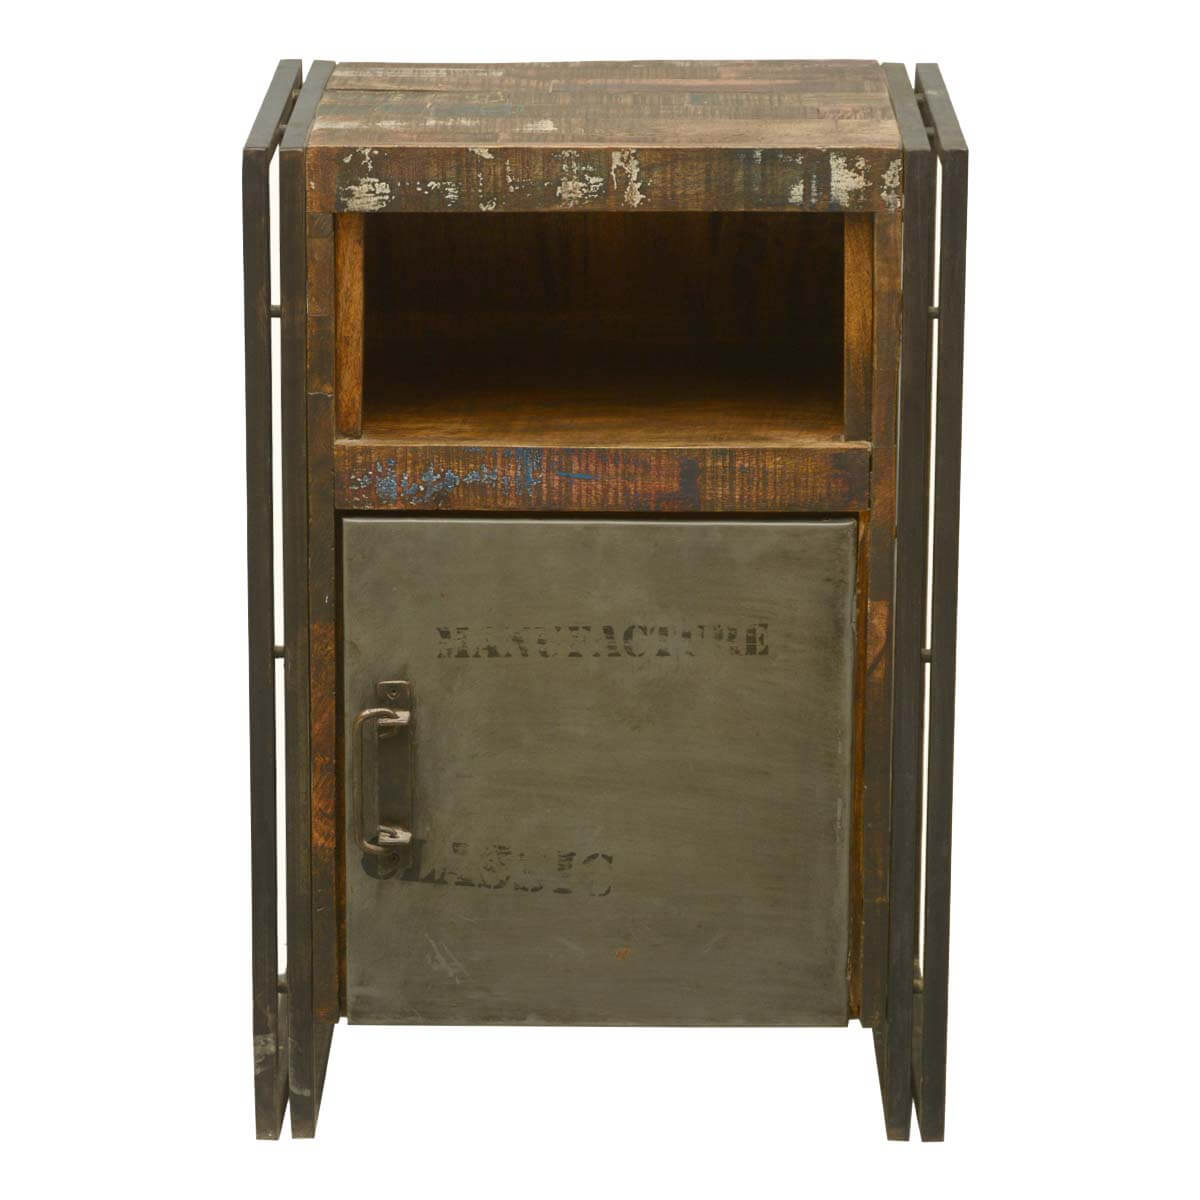 Industrial Fusion Reclaimed Wood amp Iron Nightstand Cabinet  : 57981 from sierralivingconcepts.com size 1200 x 1200 jpeg 95kB